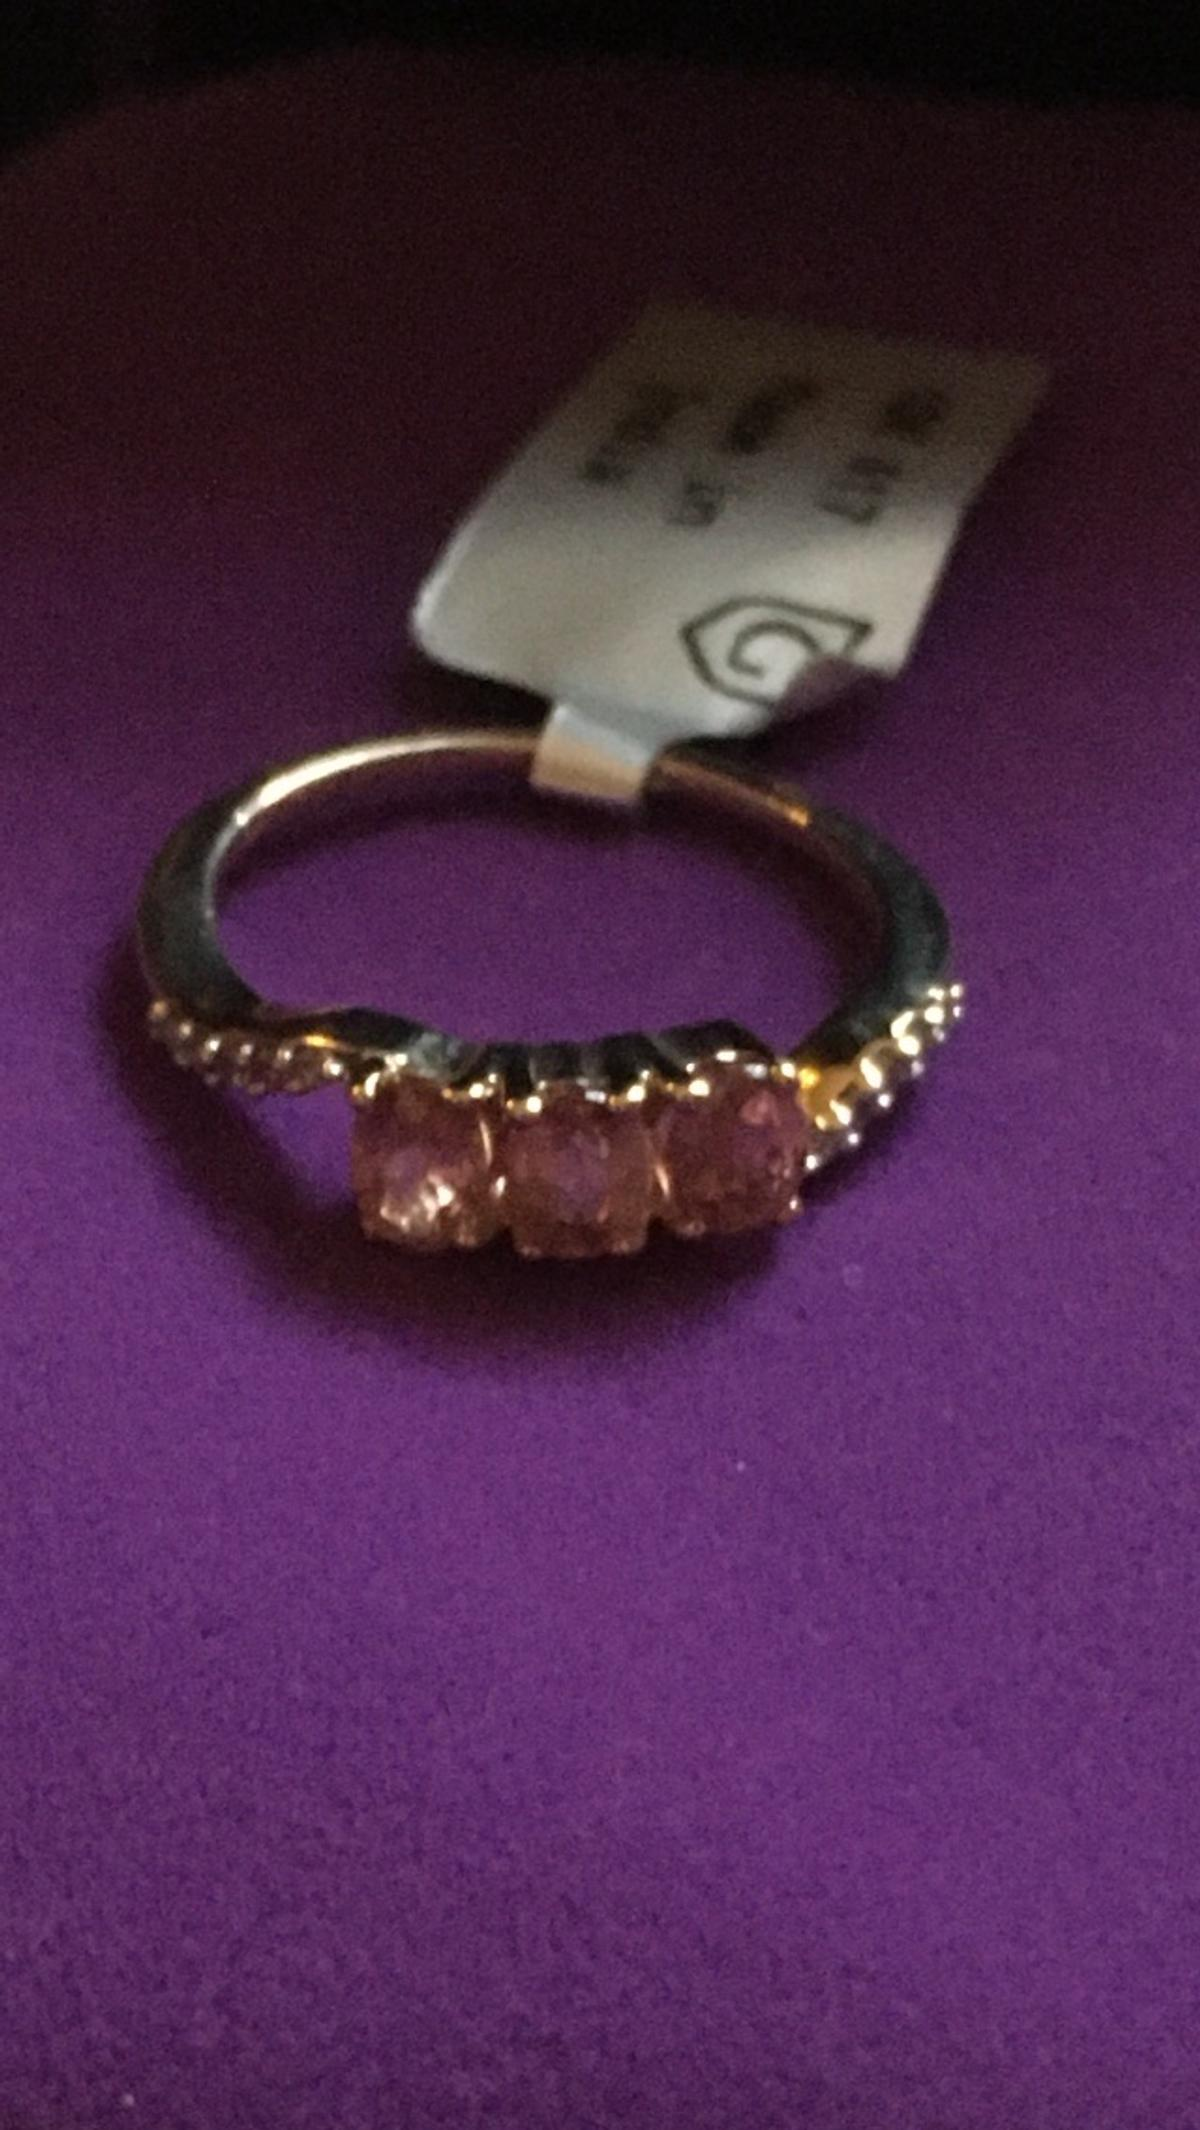 Genuine padparadscha sapphire gold ring size L/M new with tag and authenticity card